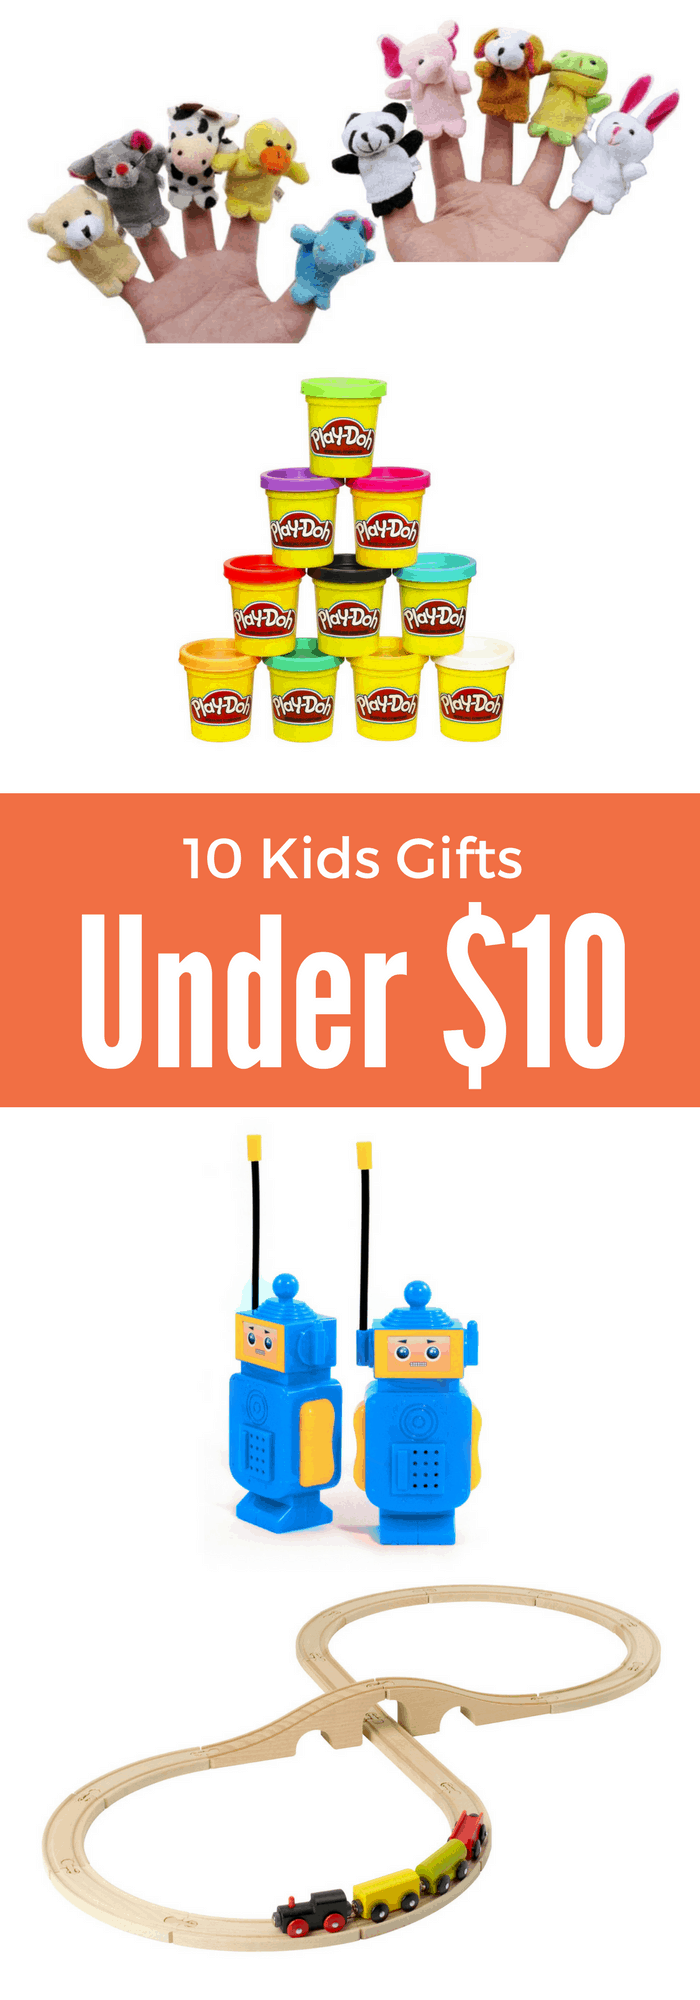 Shopping- finding gifts for kids that are under $10!